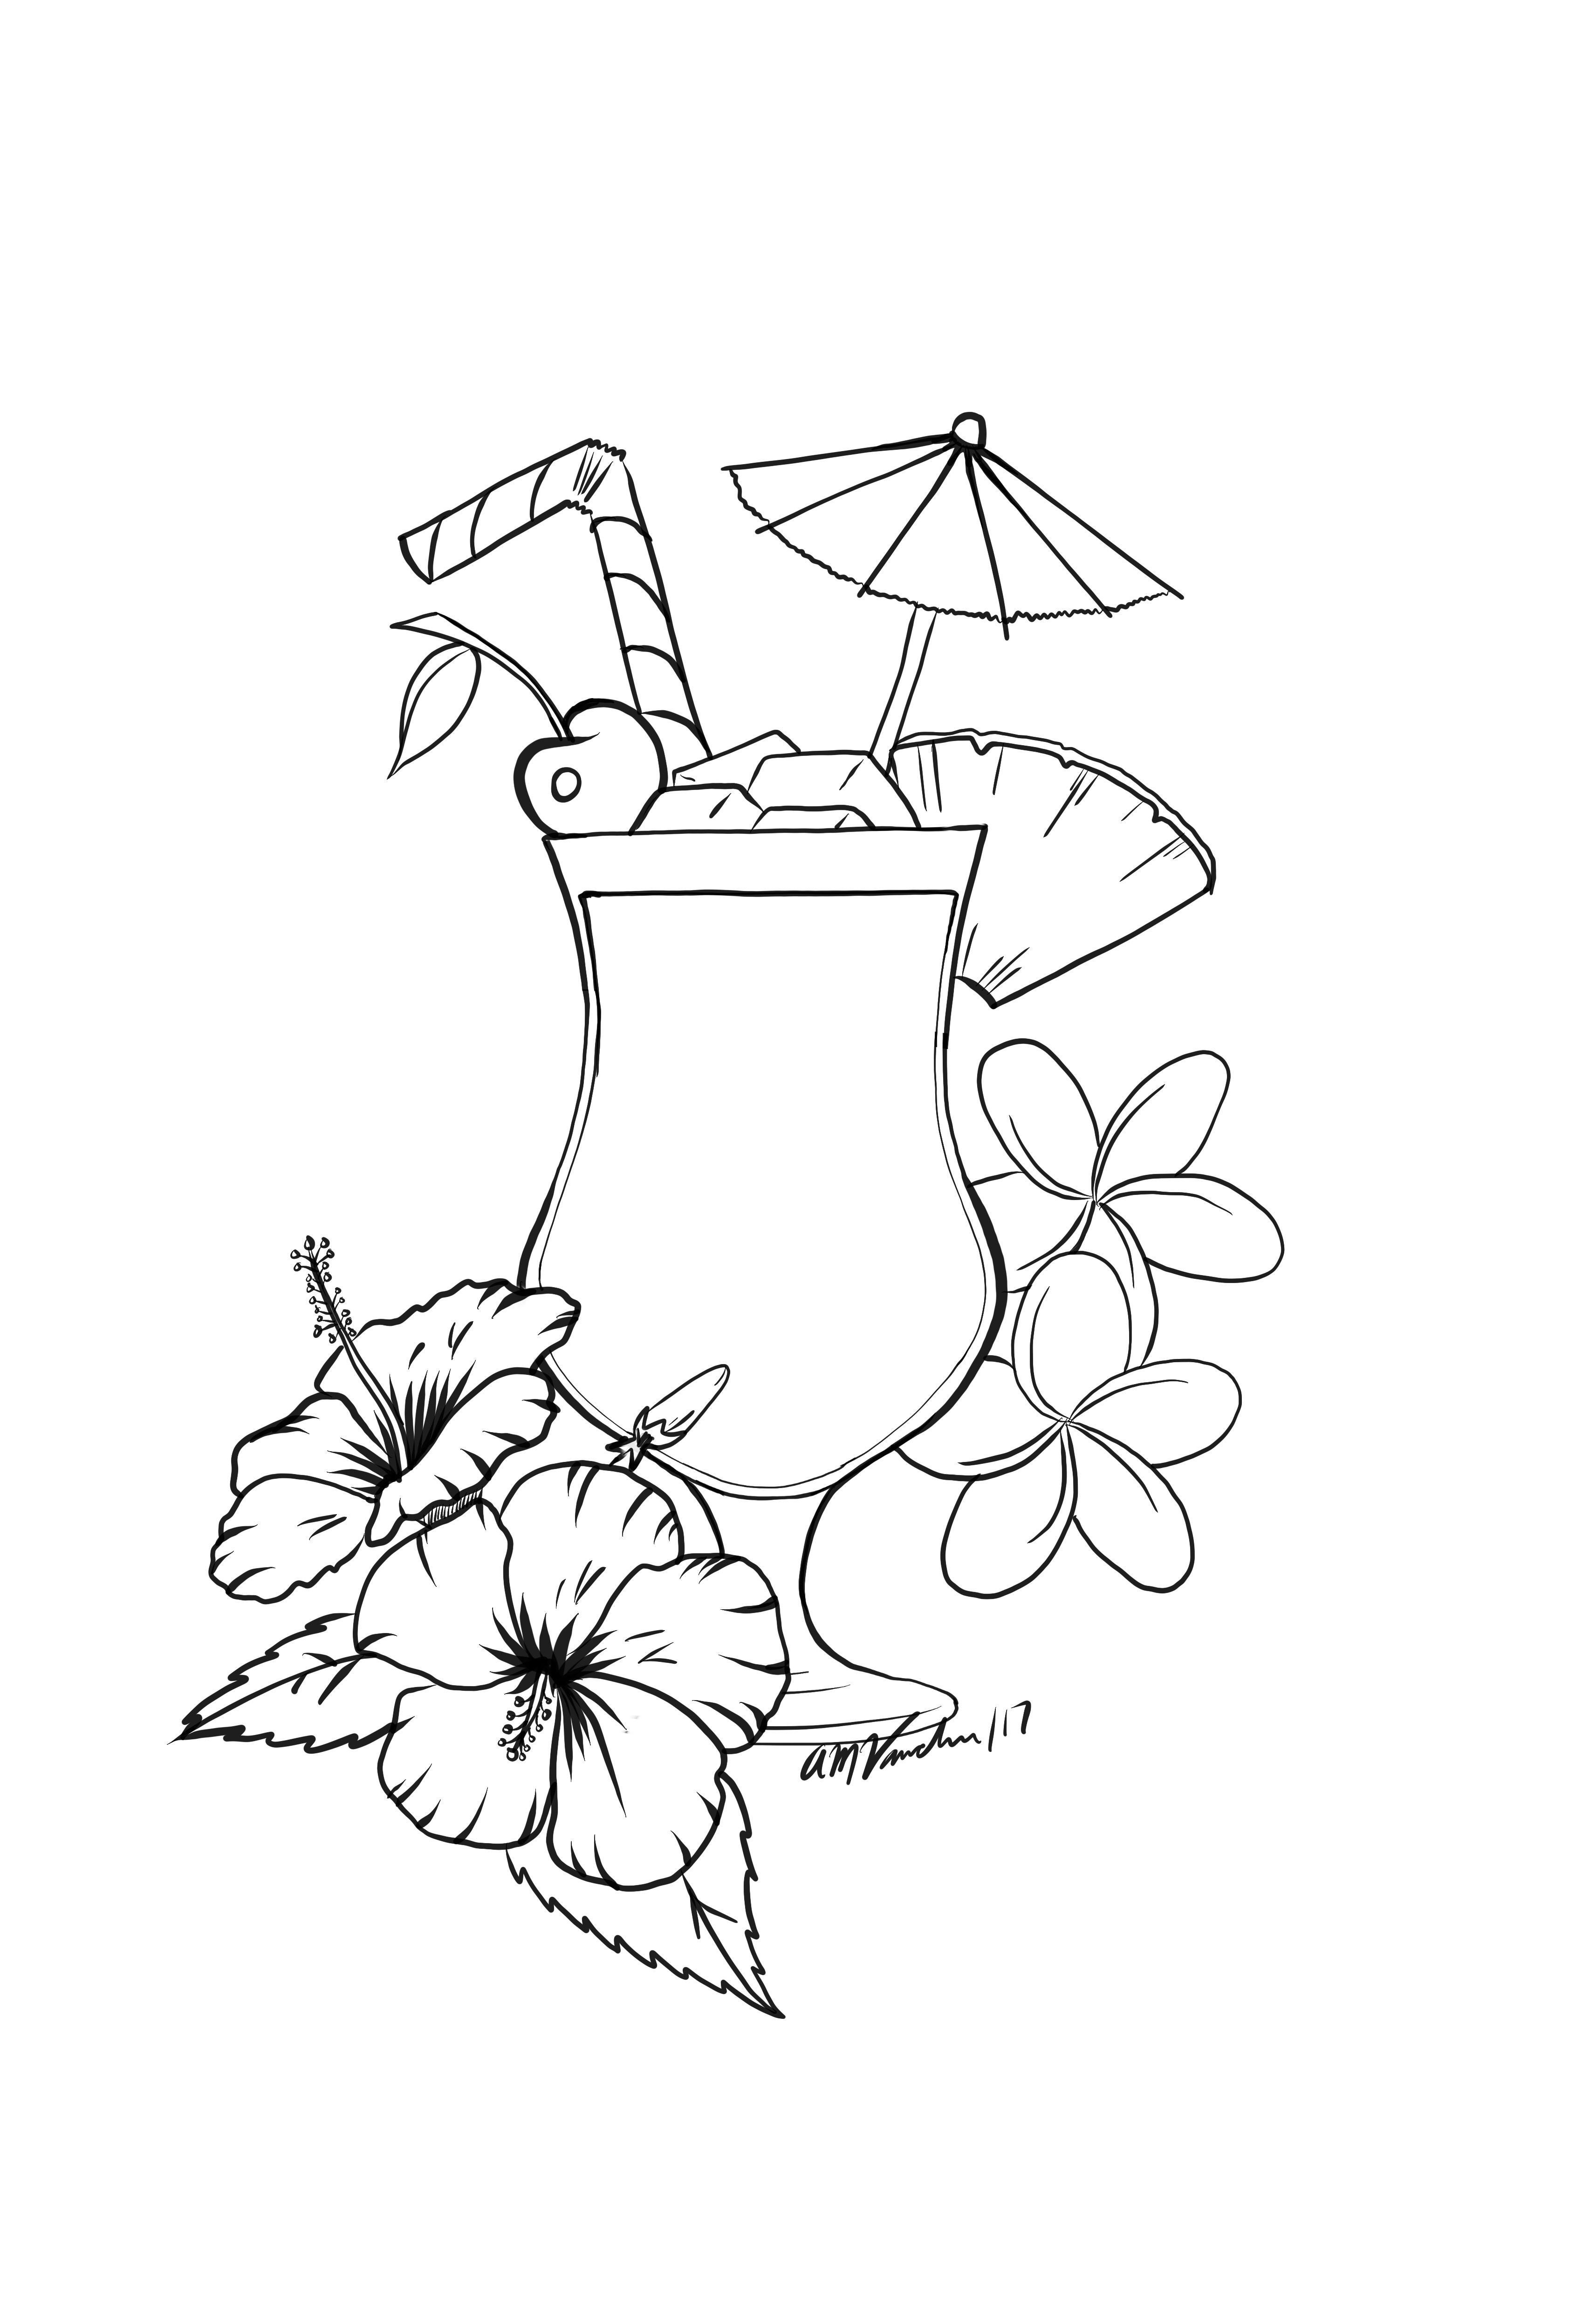 Pina Colada Tattoo Idea Inspired By Cuba With Images Tattoos